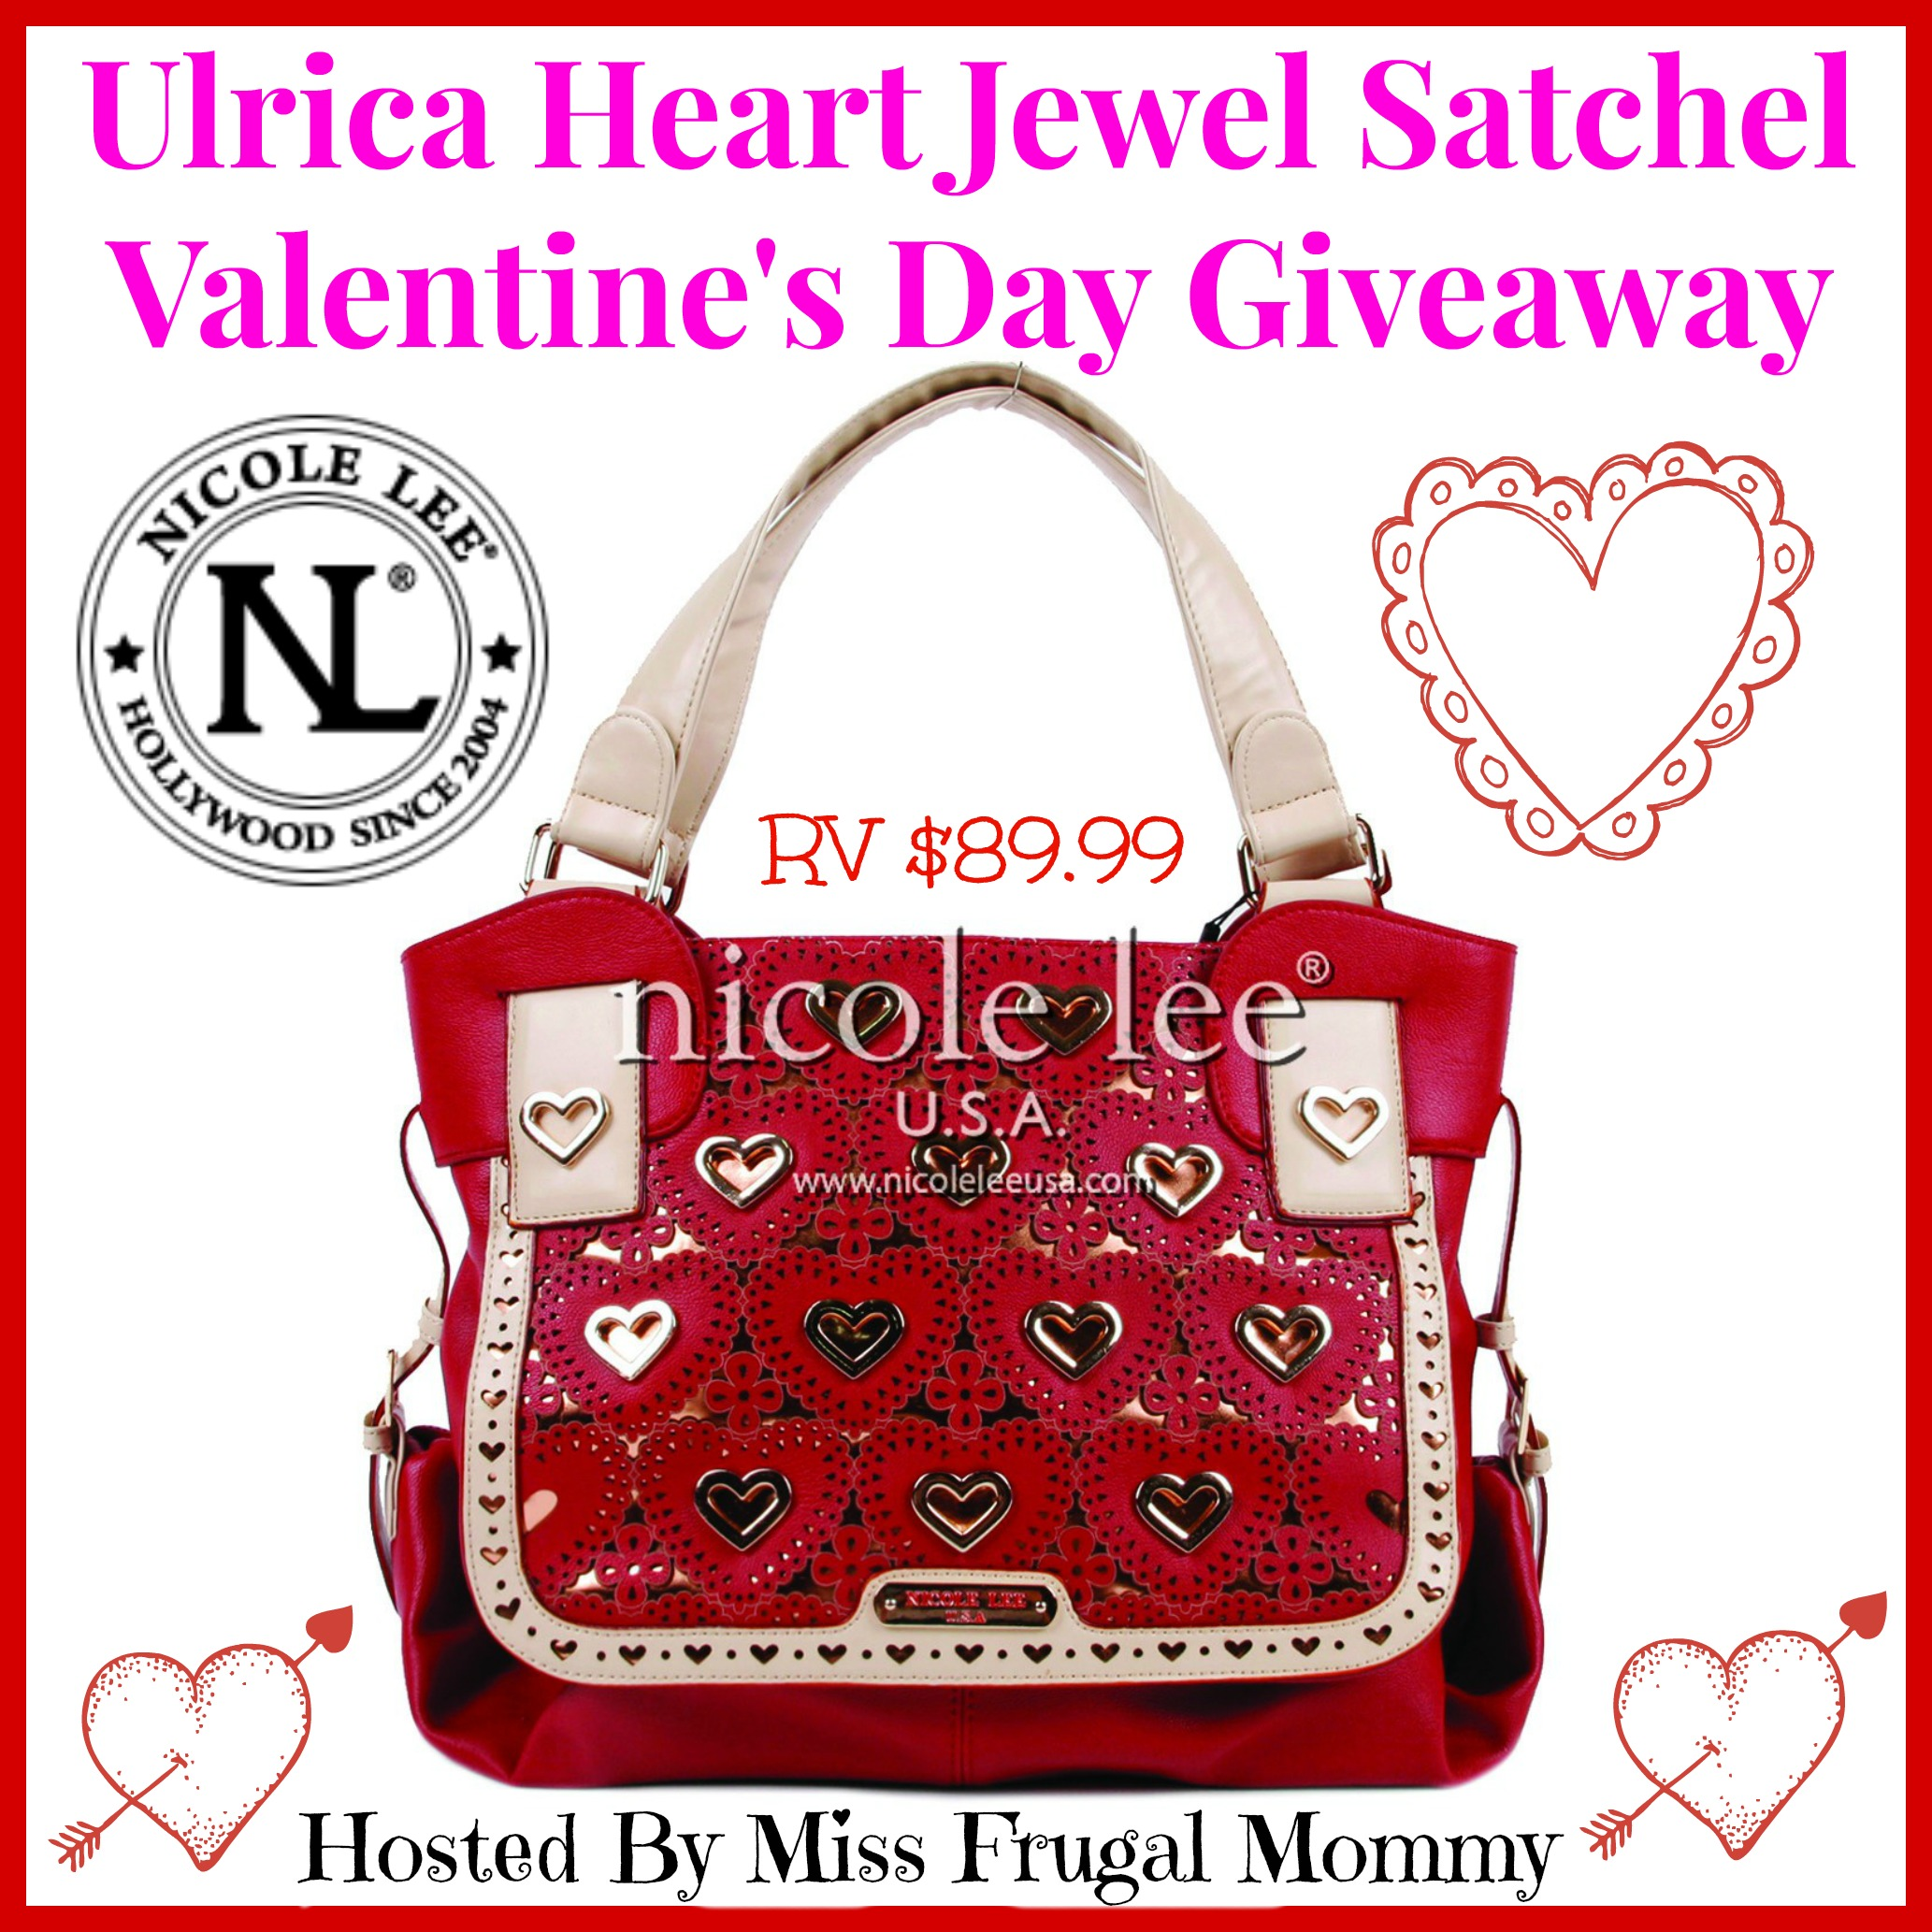 Enter the Ulrica Heart Jewel Satchel Giveaway. Ends 2/27.